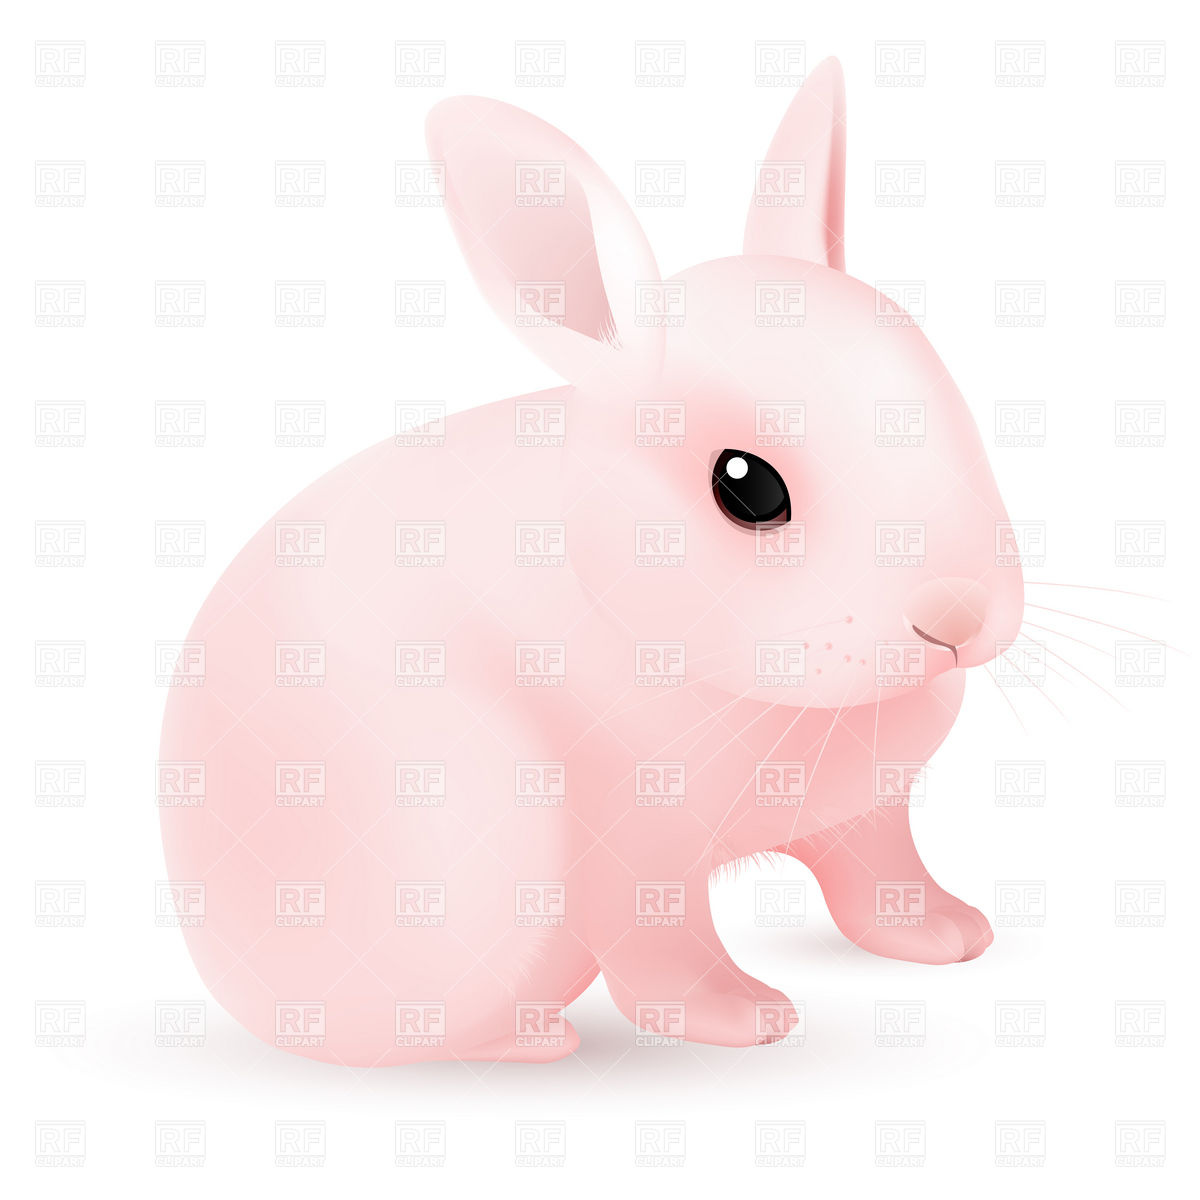 18 Pink Easter Bunny Vectors Images